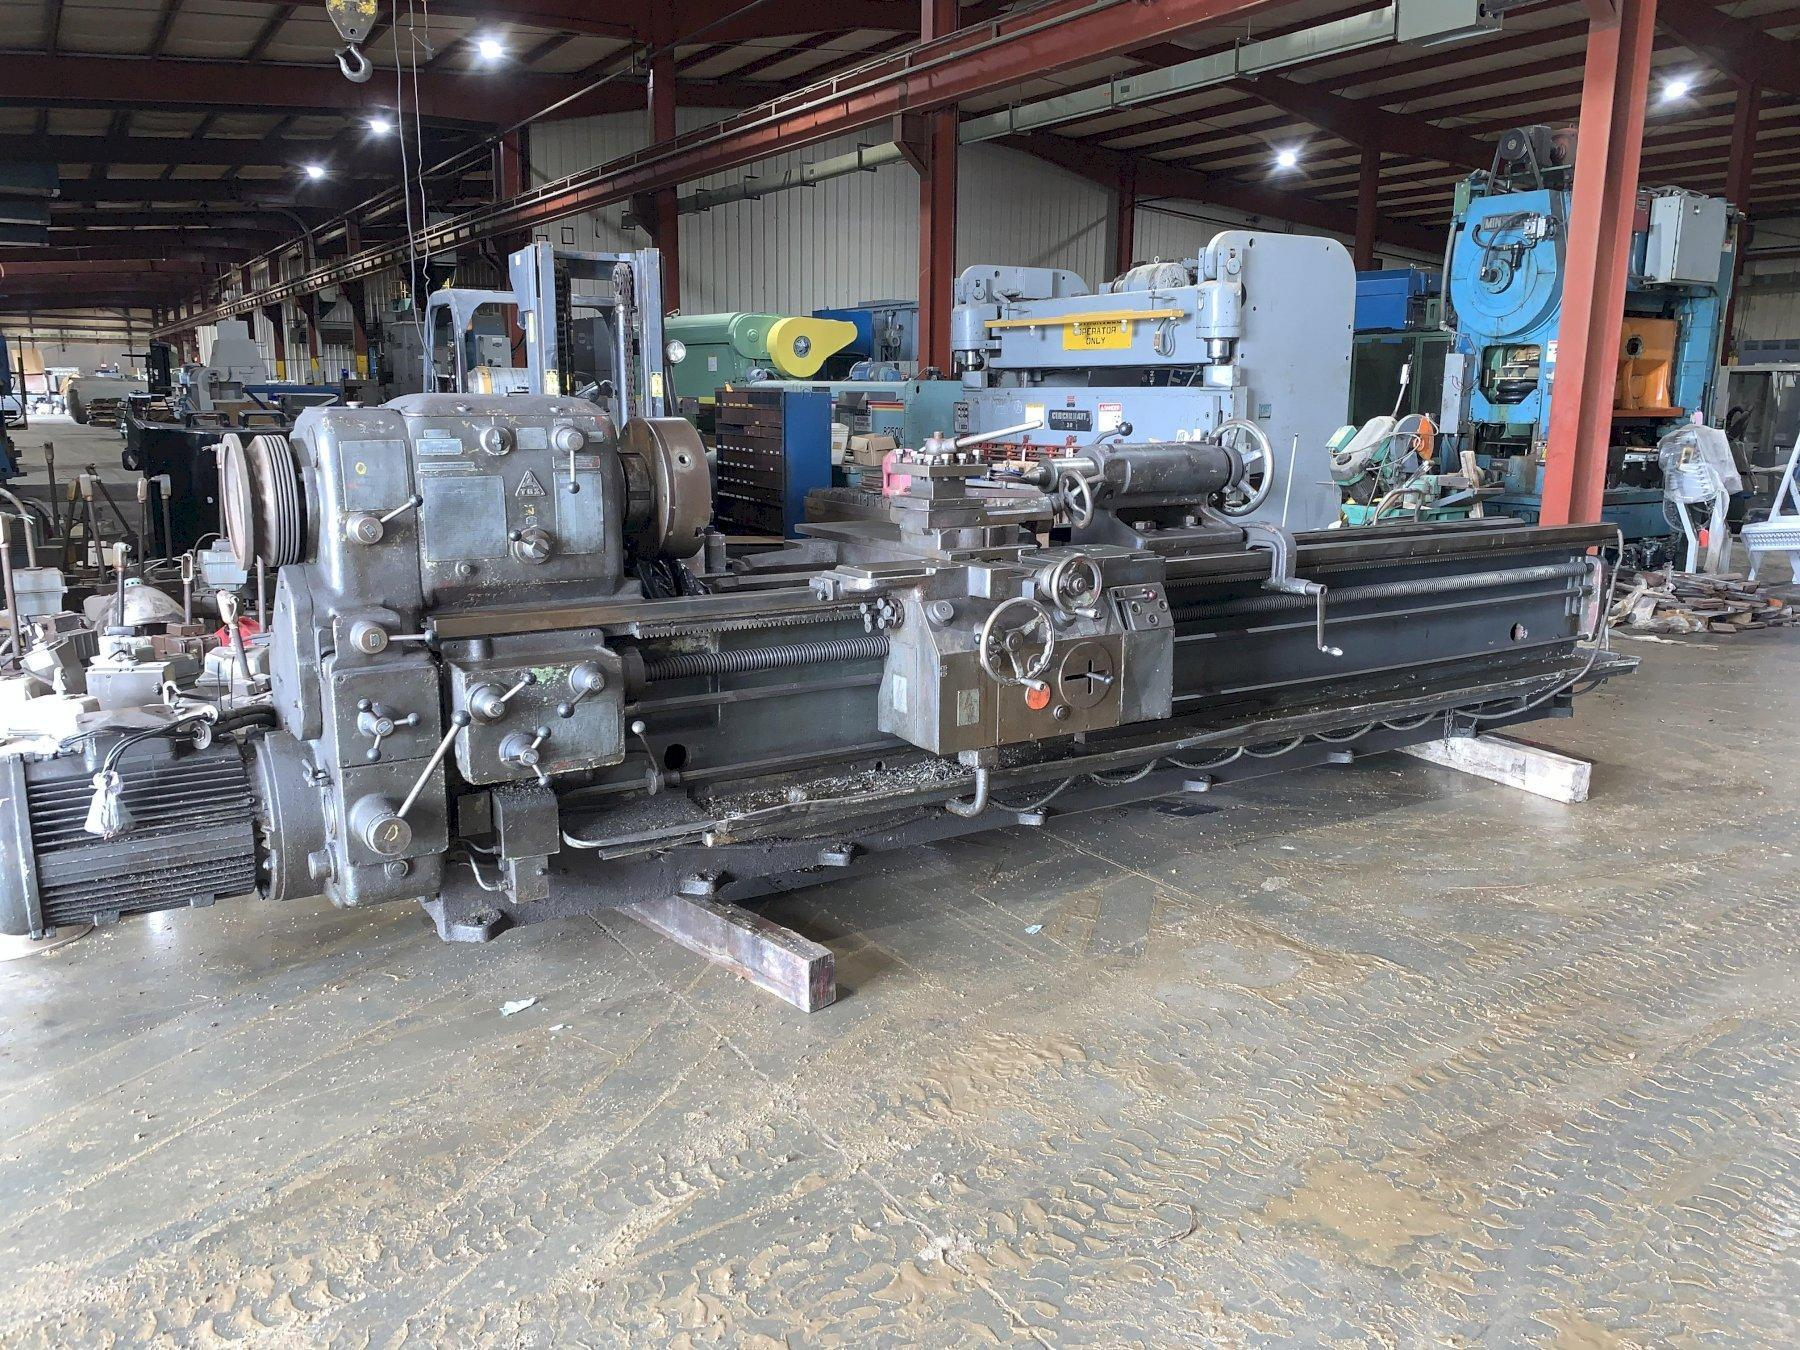 1 - PREOWNED TOS-CELAKOVICE GAP BED ENGINE LATHE, MODEL #: SU-63A, S/N: 0424424